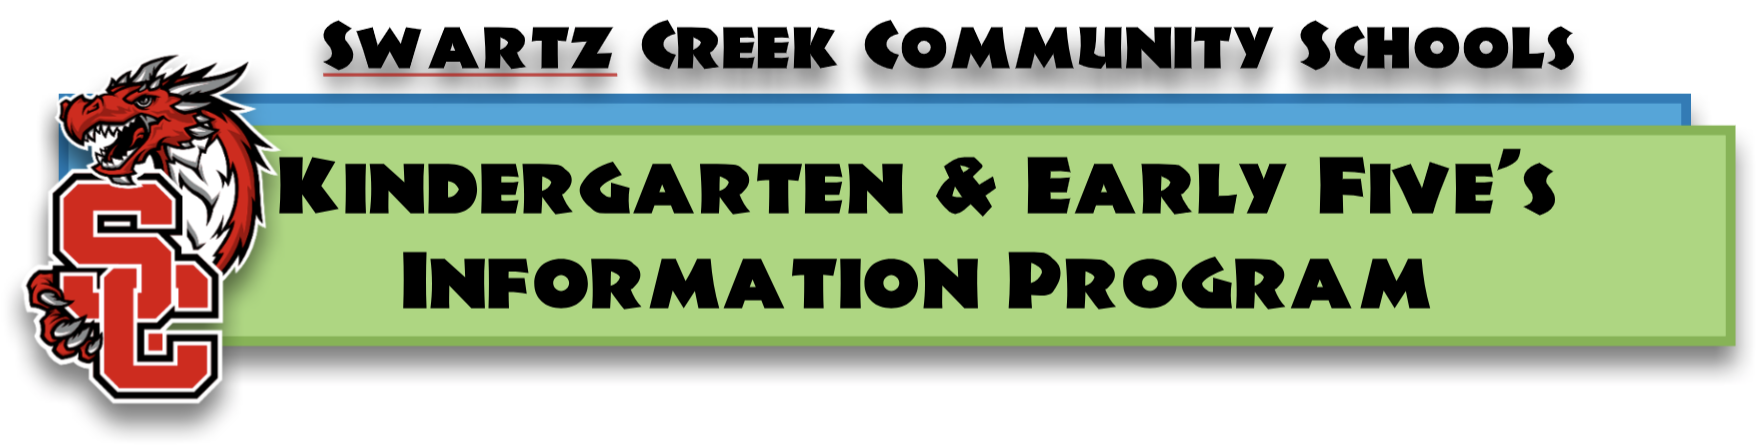 Title: Kindergarten and Early Five's Information Program